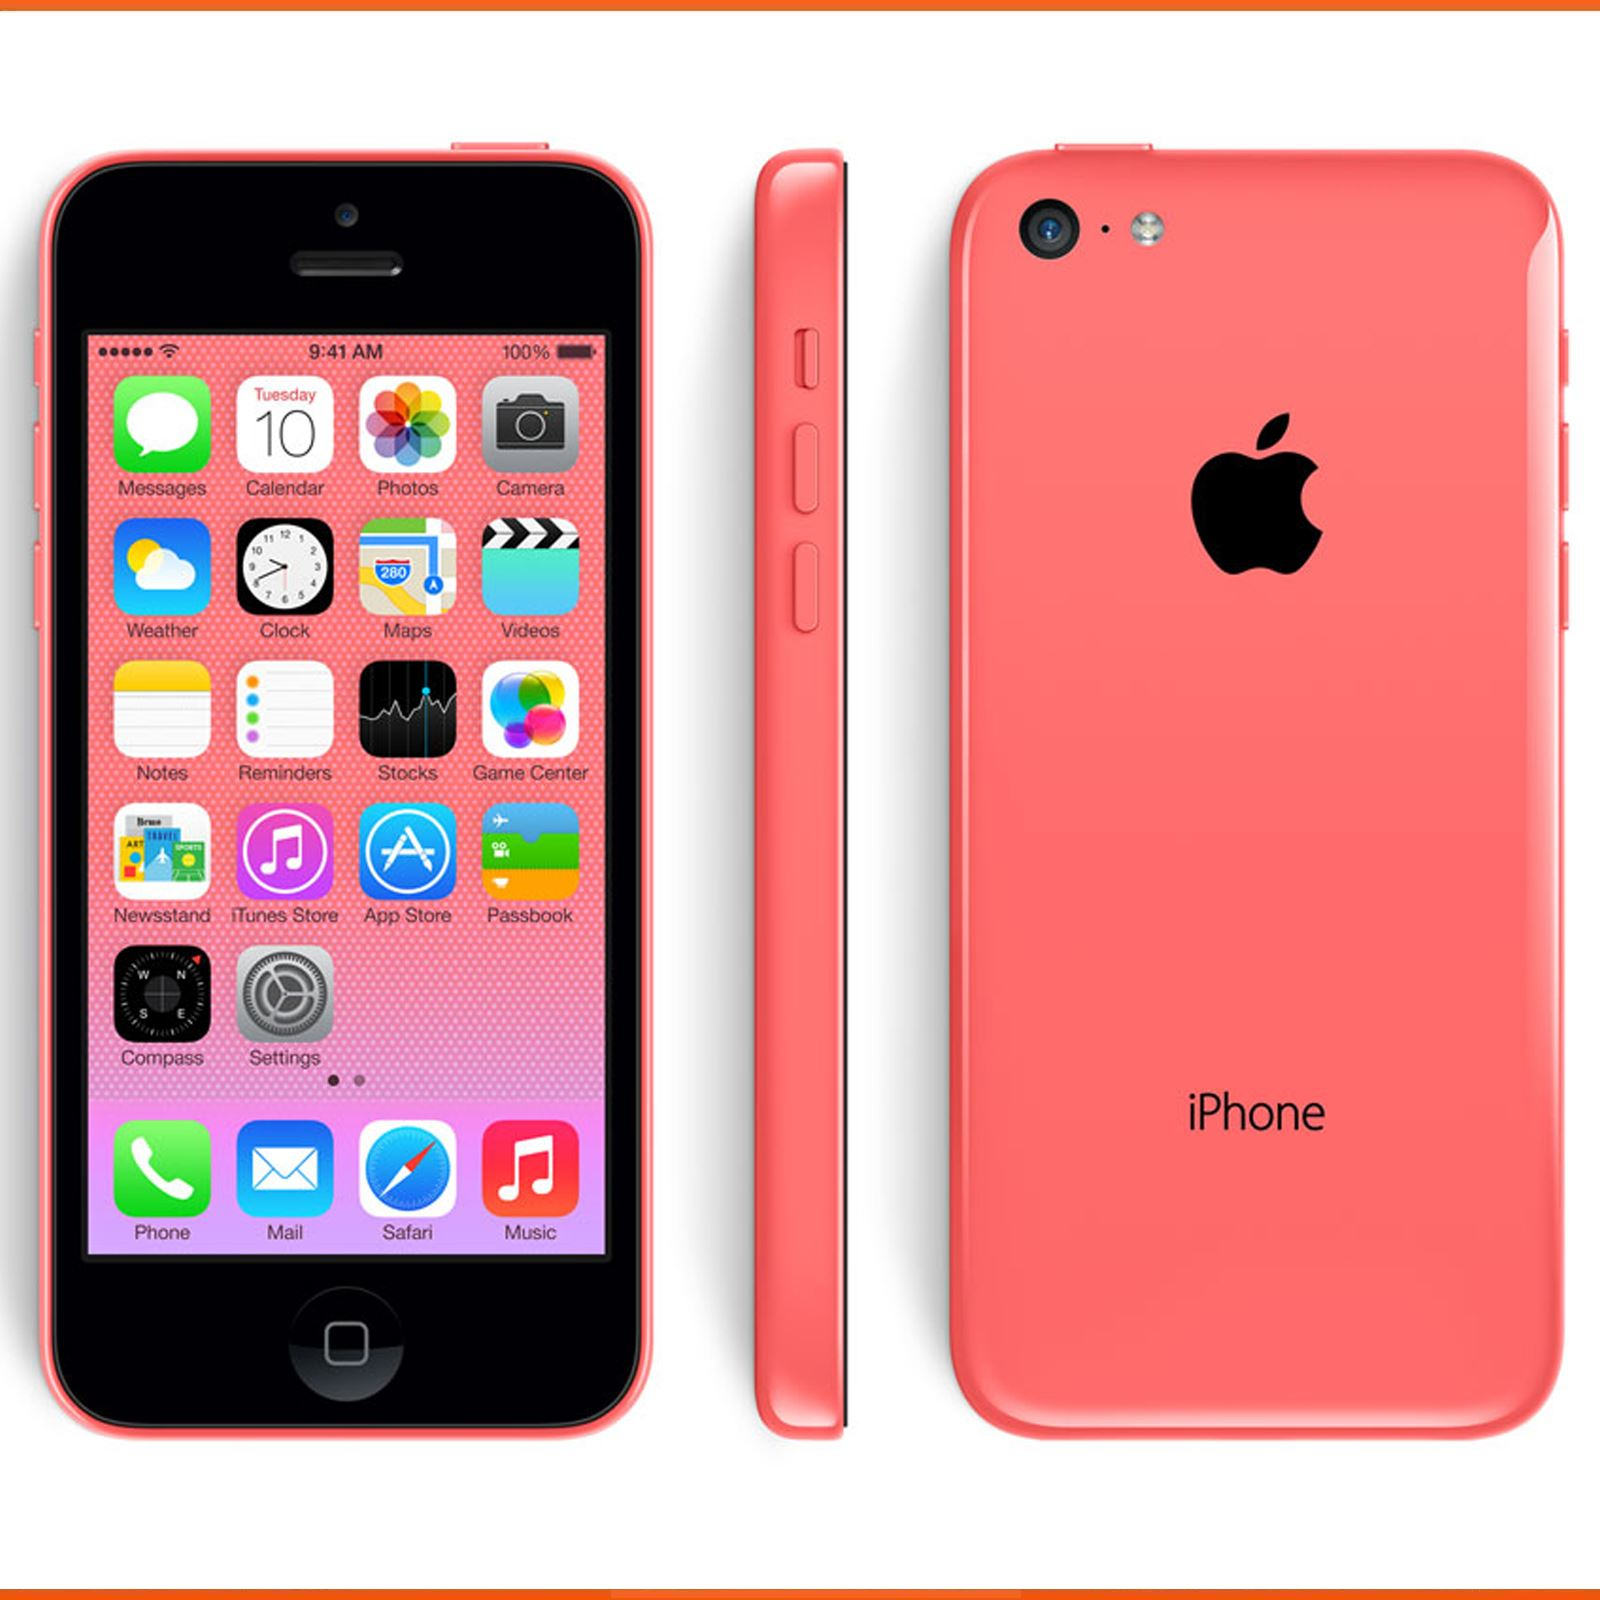 Apple iPhone 5c - Full phone specifications - GSM Arena